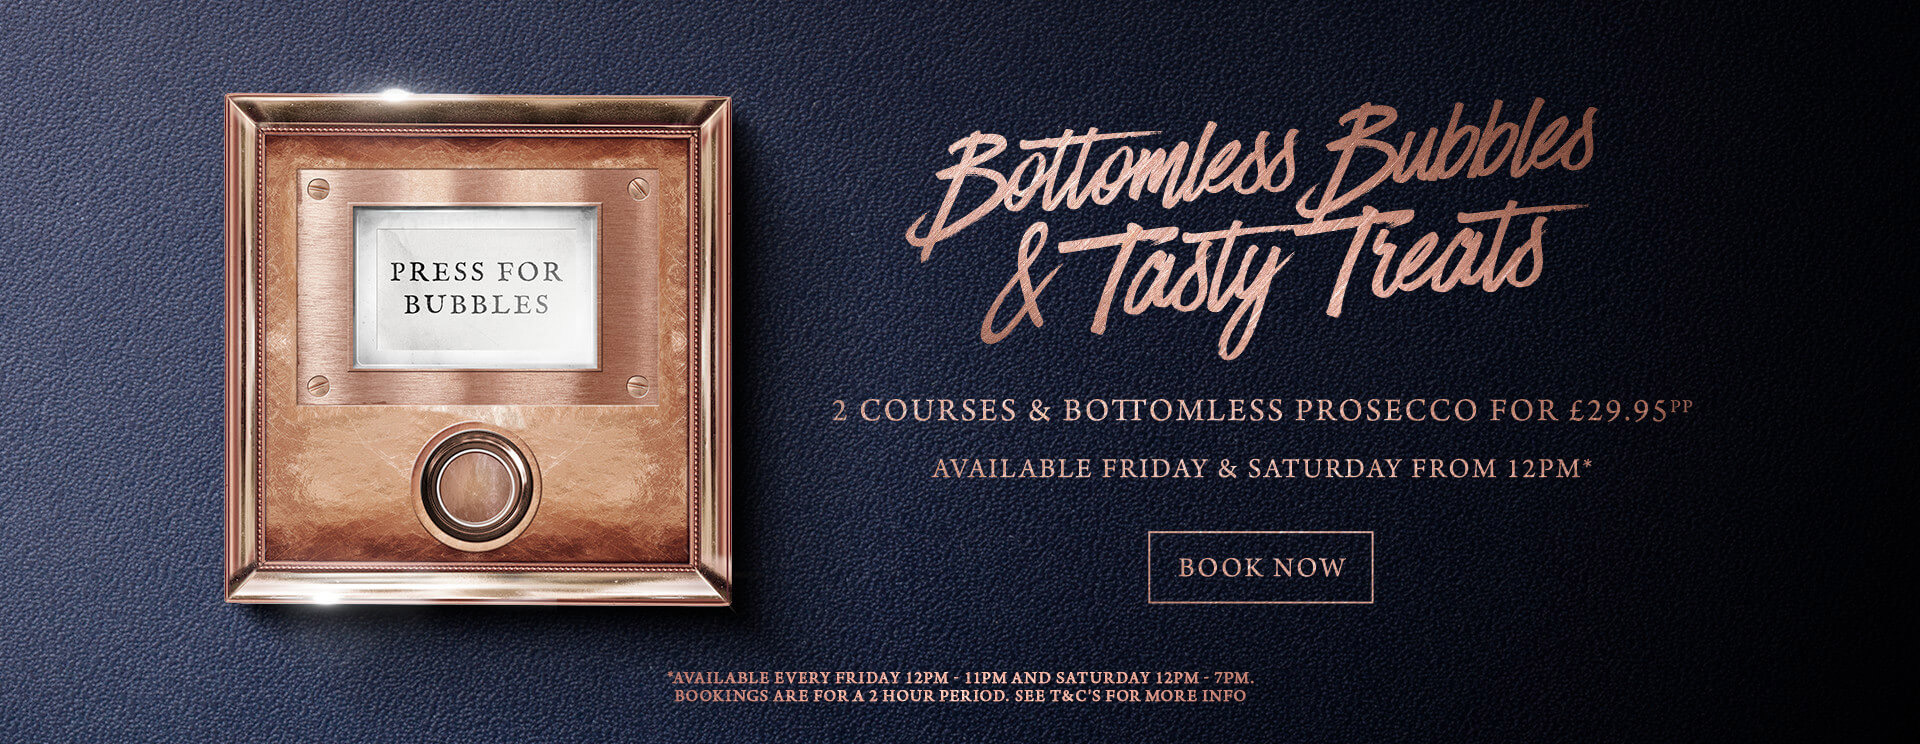 Bottomless Bubbles The Merlin - Book now